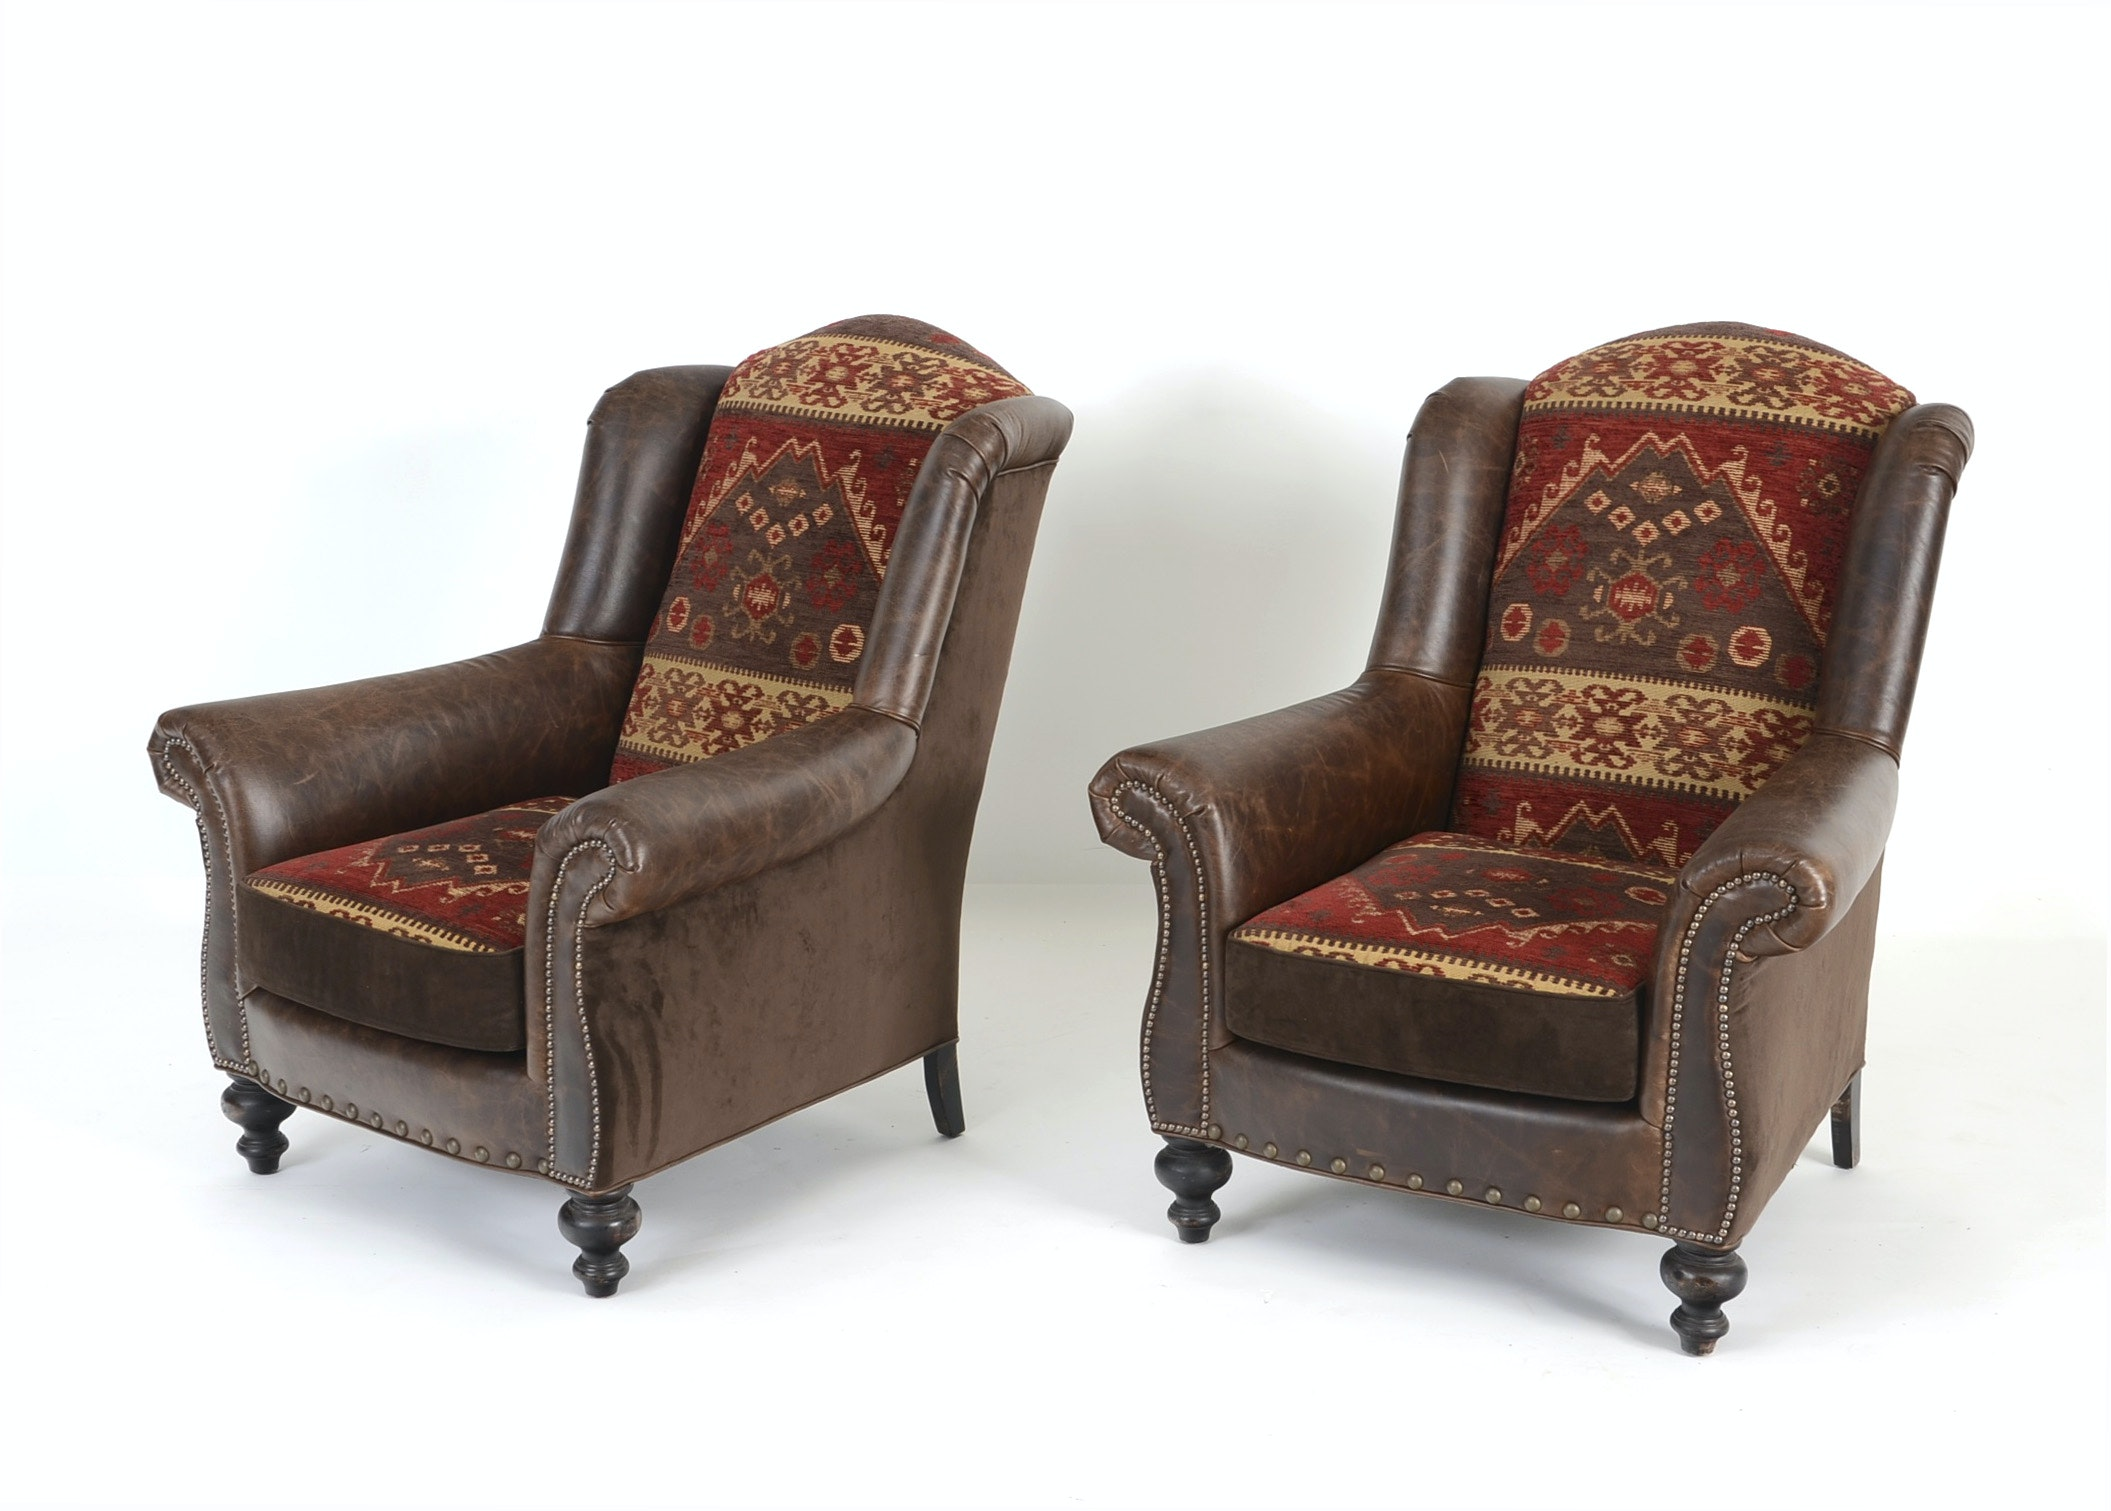 Pair of Old Hickory Tannery Southwestern Wingback Chairs ...  sc 1 st  EBTH.com & Pair of Old Hickory Tannery Southwestern Wingback Chairs : EBTH